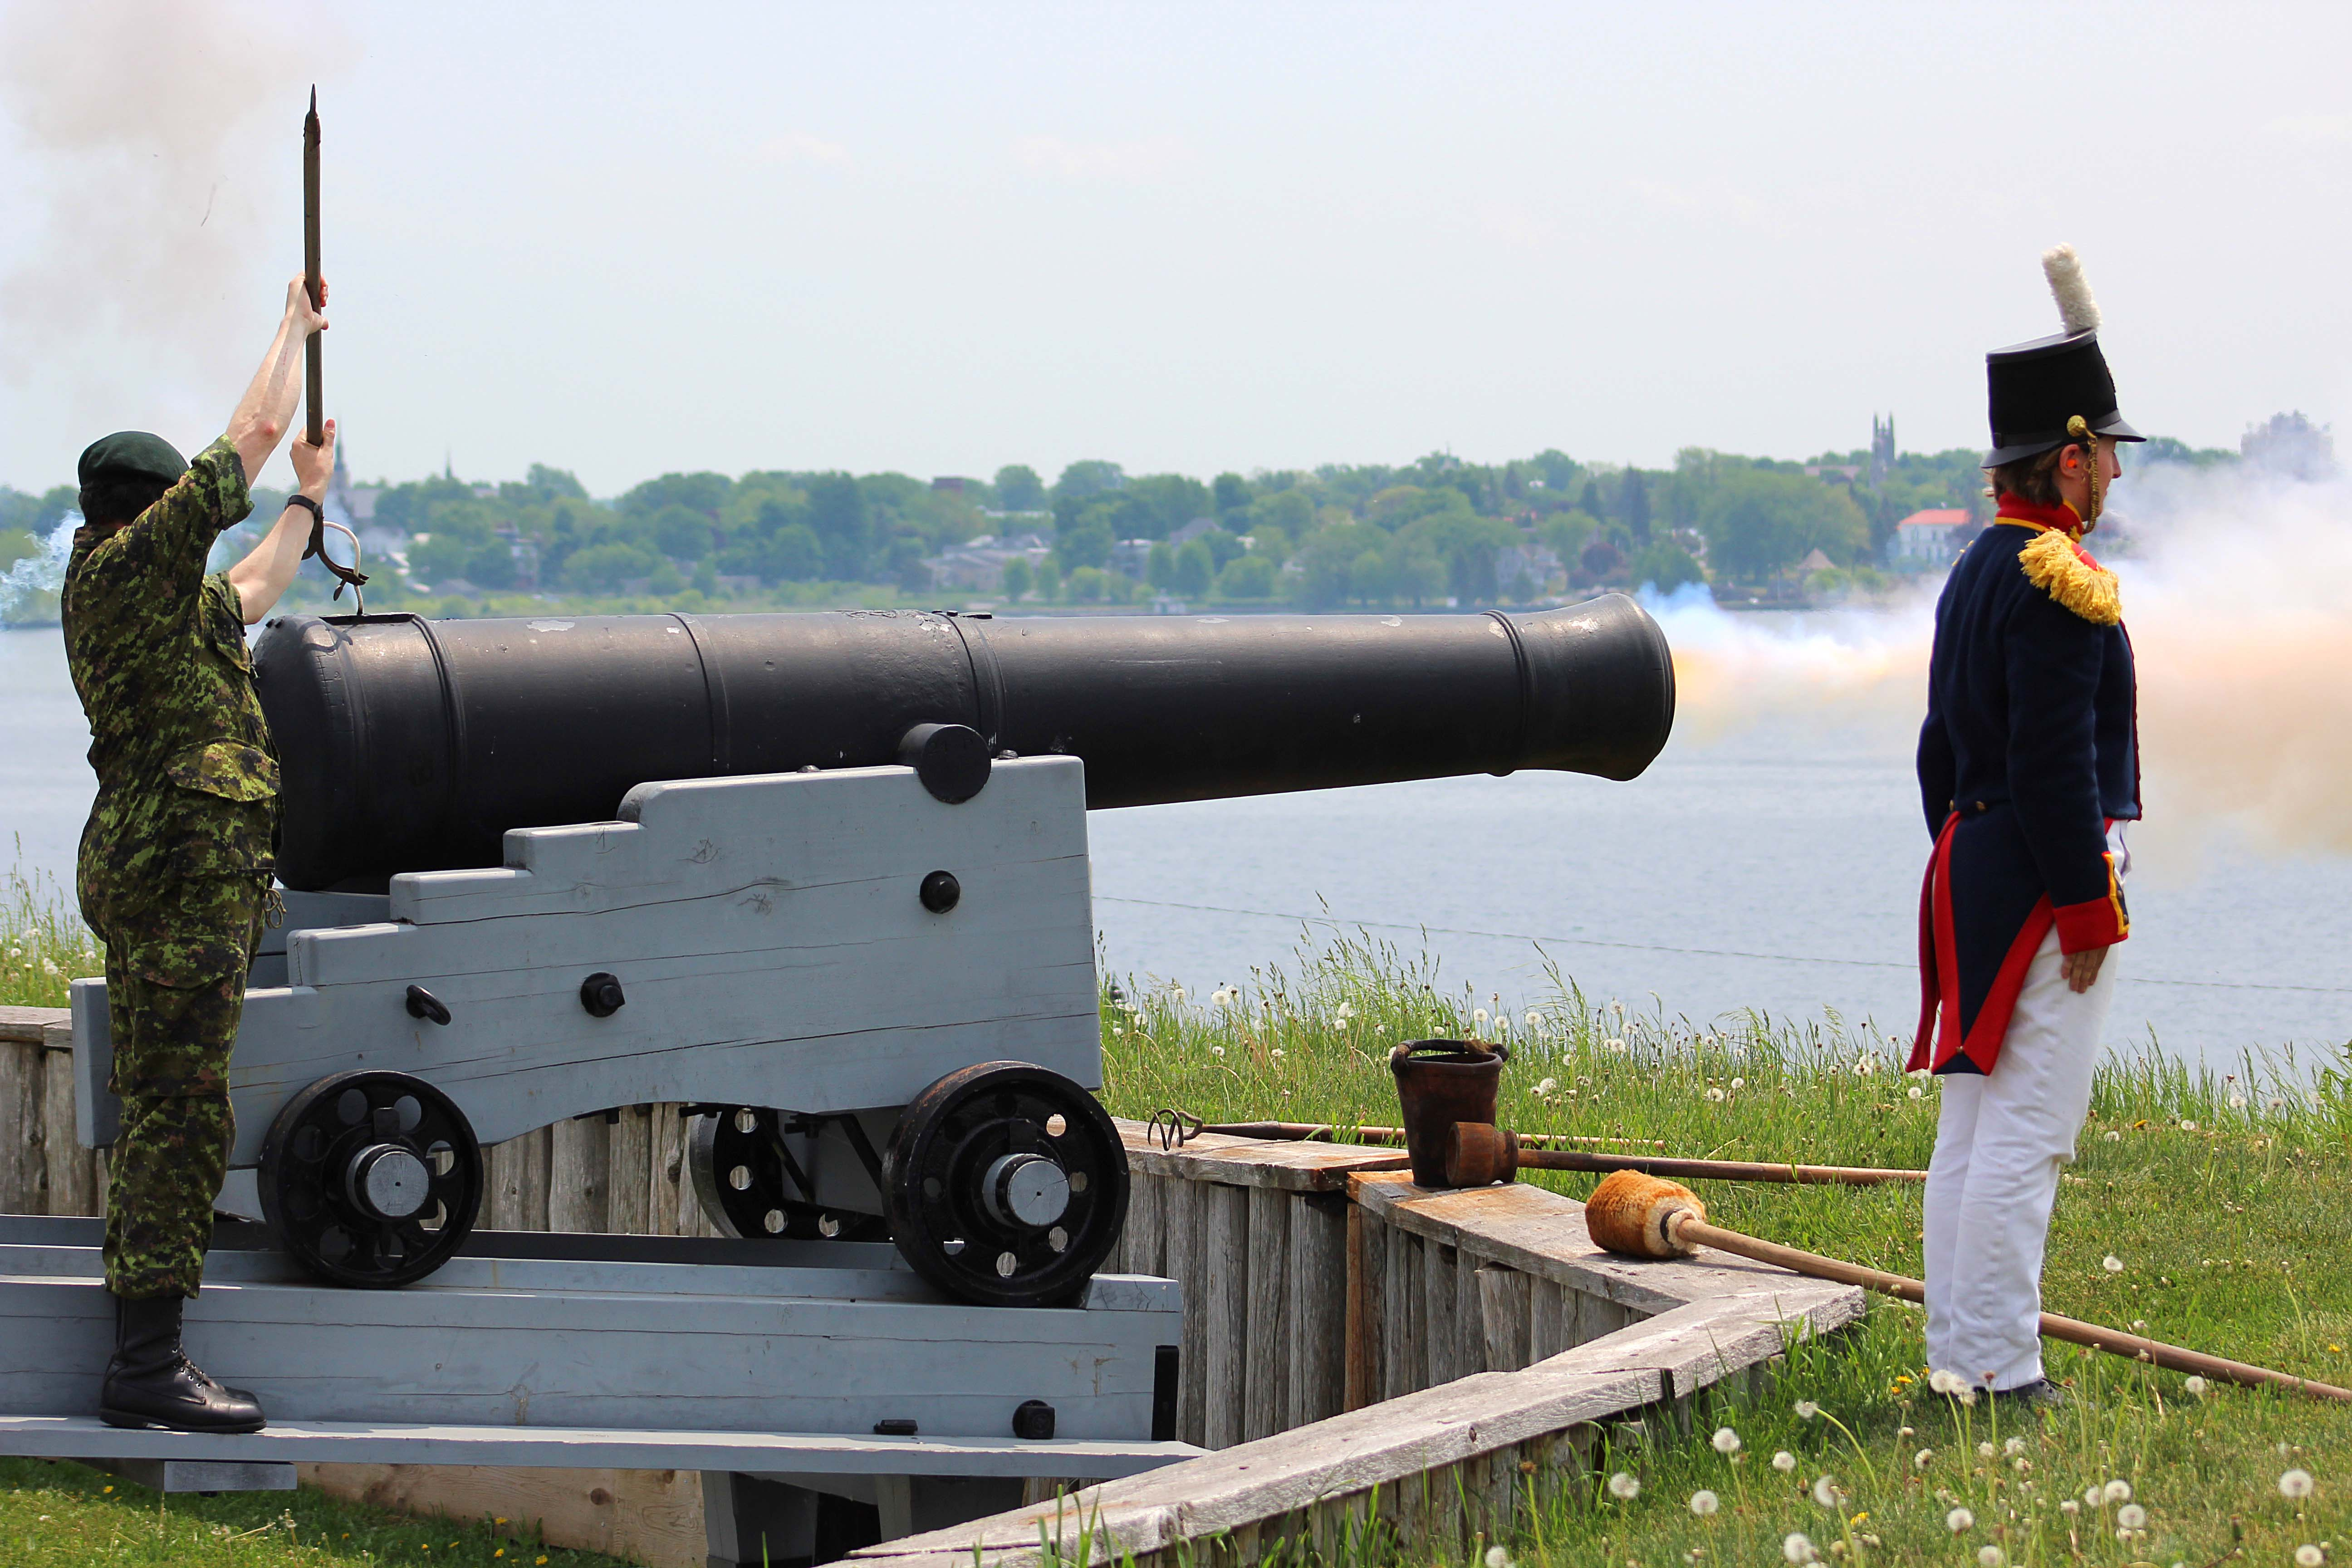 Brigadier General James Selbie, Colonel Commandant of the Royal Regiment of Canadian Artillery fires the 19th century muzzle-loading cannon on the ramparts of Fort Wellington National Historic Site on May 28 at a ceremony commemorating the Fenian Raids. BGen Selbie, as the Col Comdt, is the representative of all serving and retired Gunners to the Captain General: Her Majesty, Queen Elizabeth II.